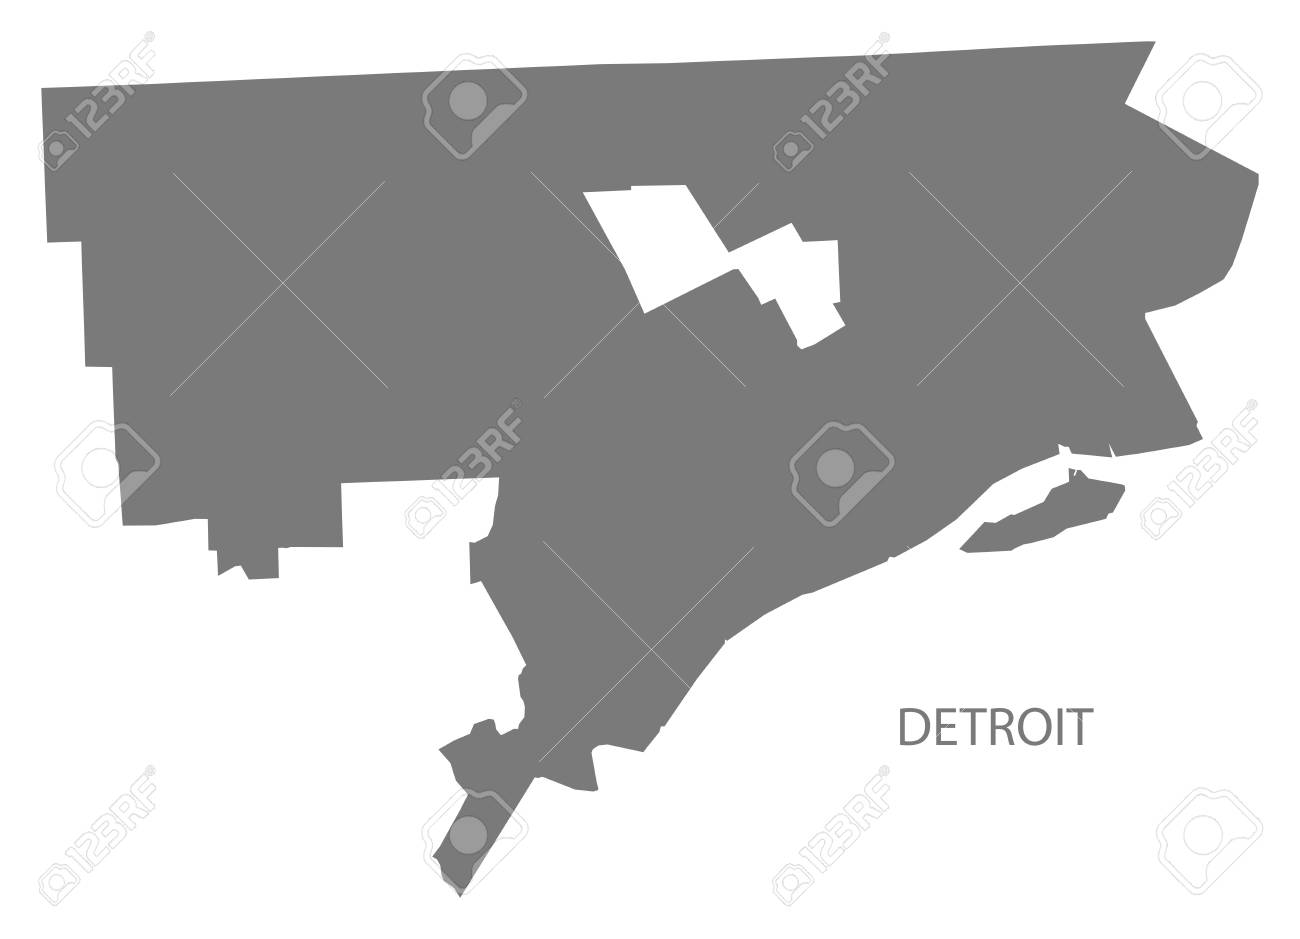 Detroit Michigan City Map Grey Illustration Silhouette Shape Royalty on